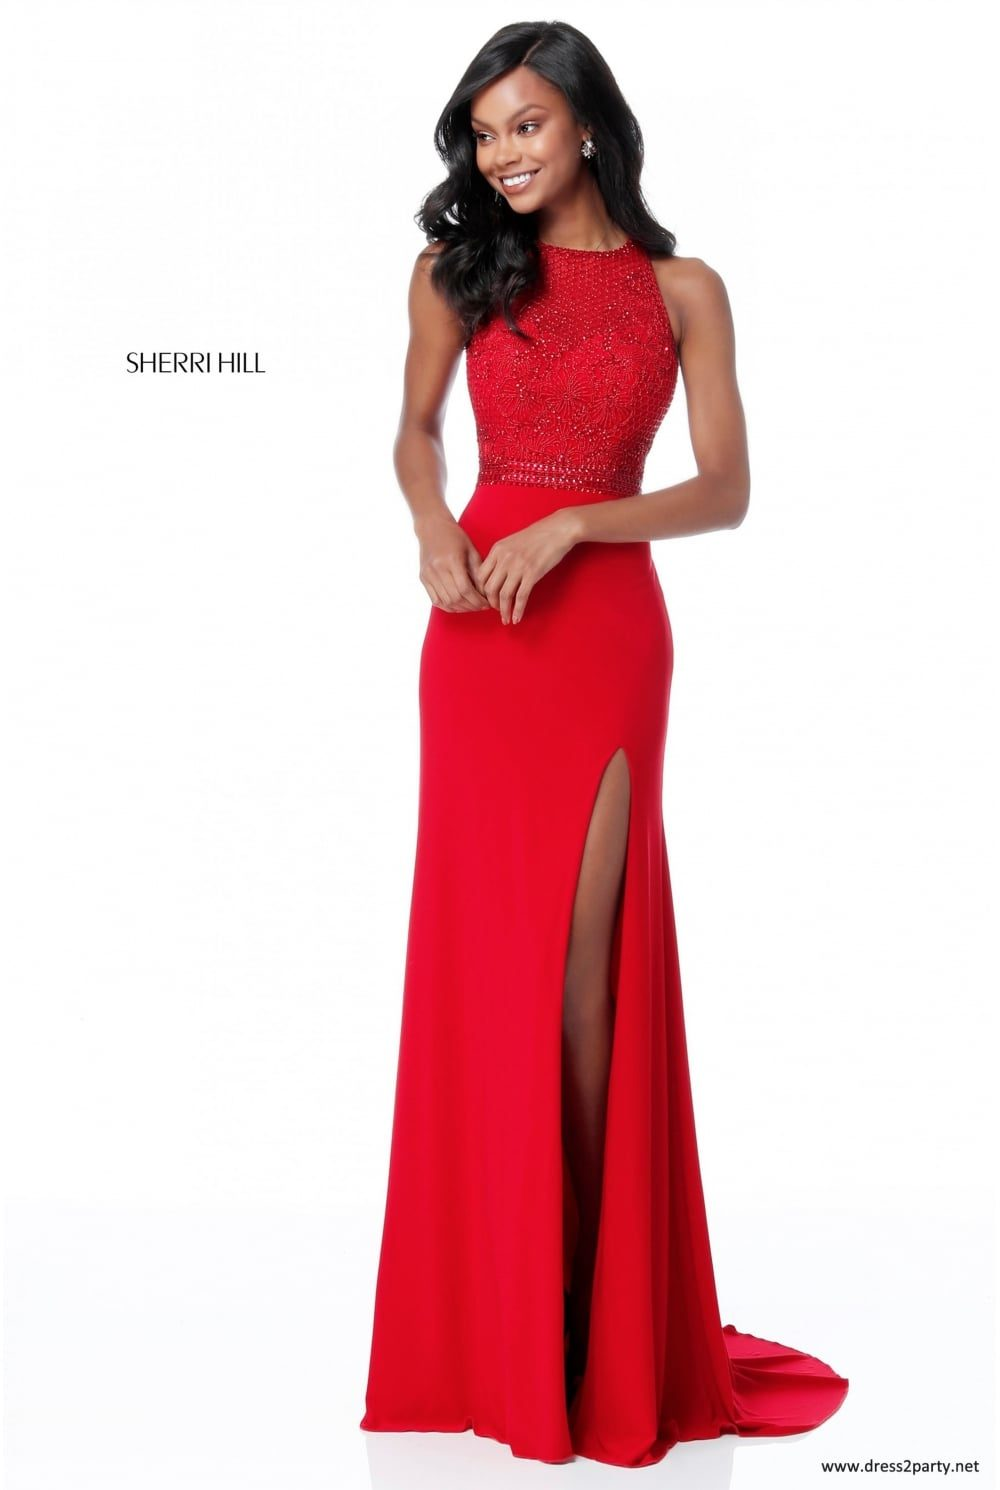 462a80f0533 Sherri Hill 51686 Prom Dress